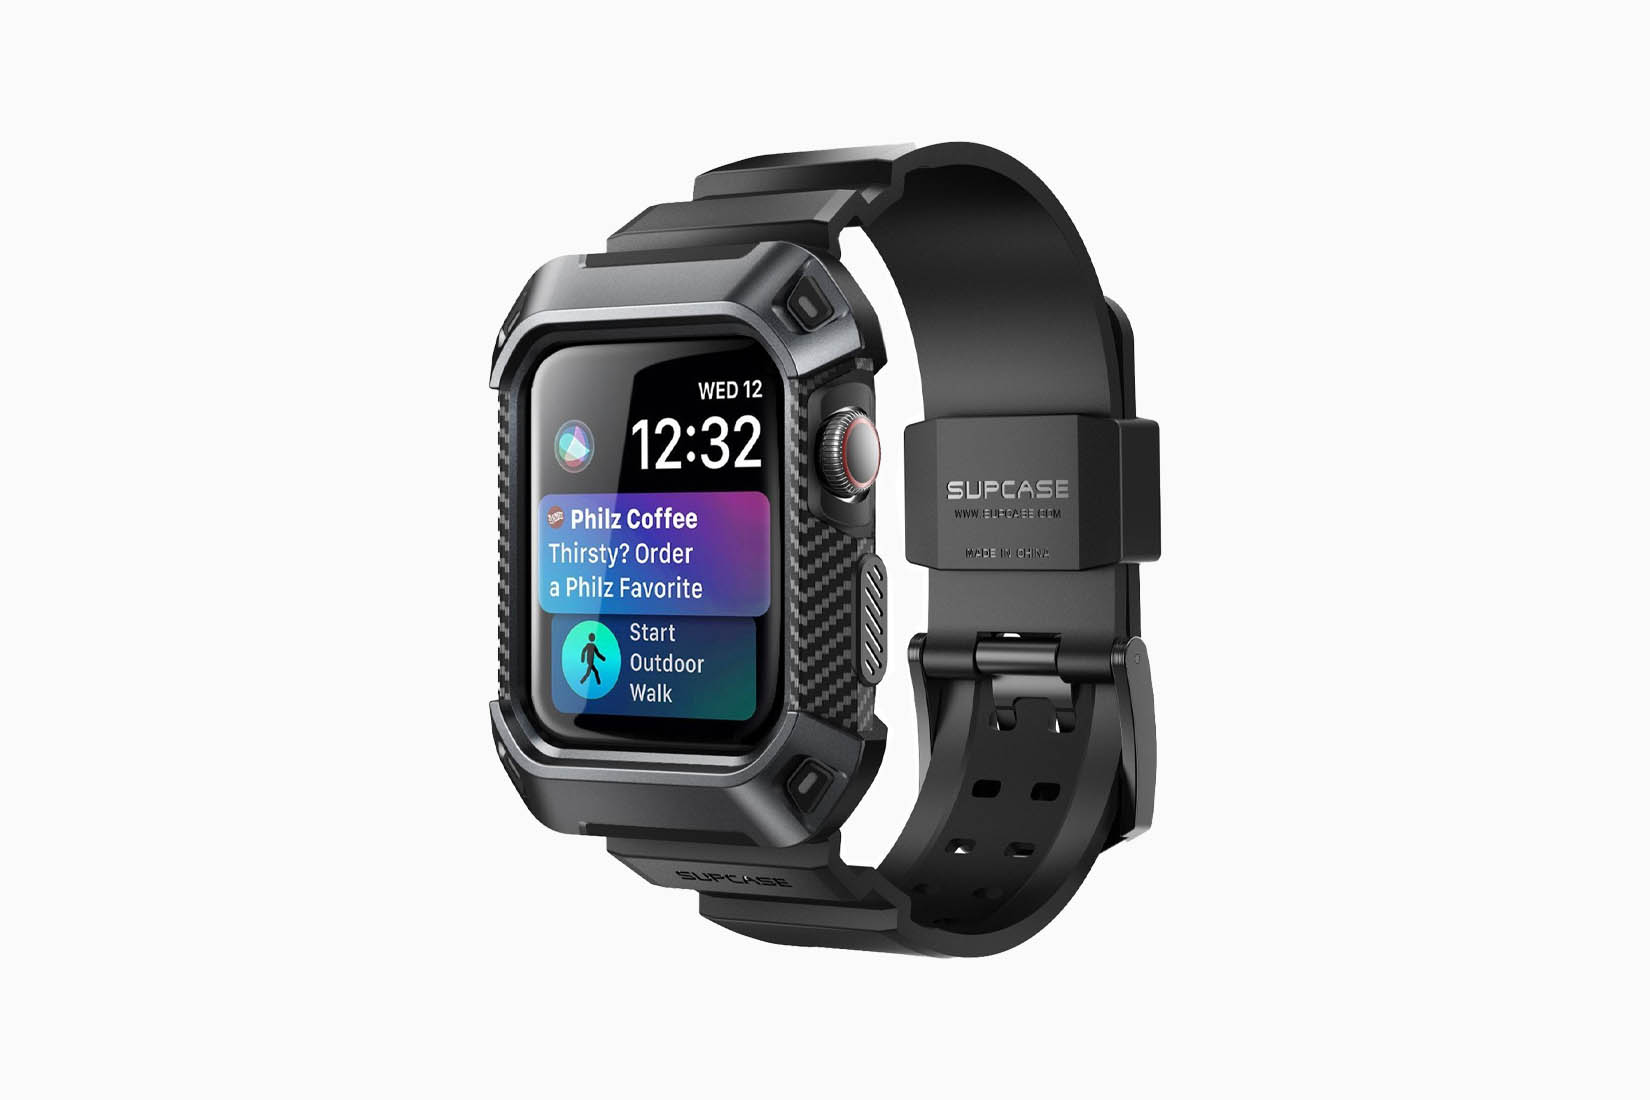 best apple watch bands supcase review Luxe Digital